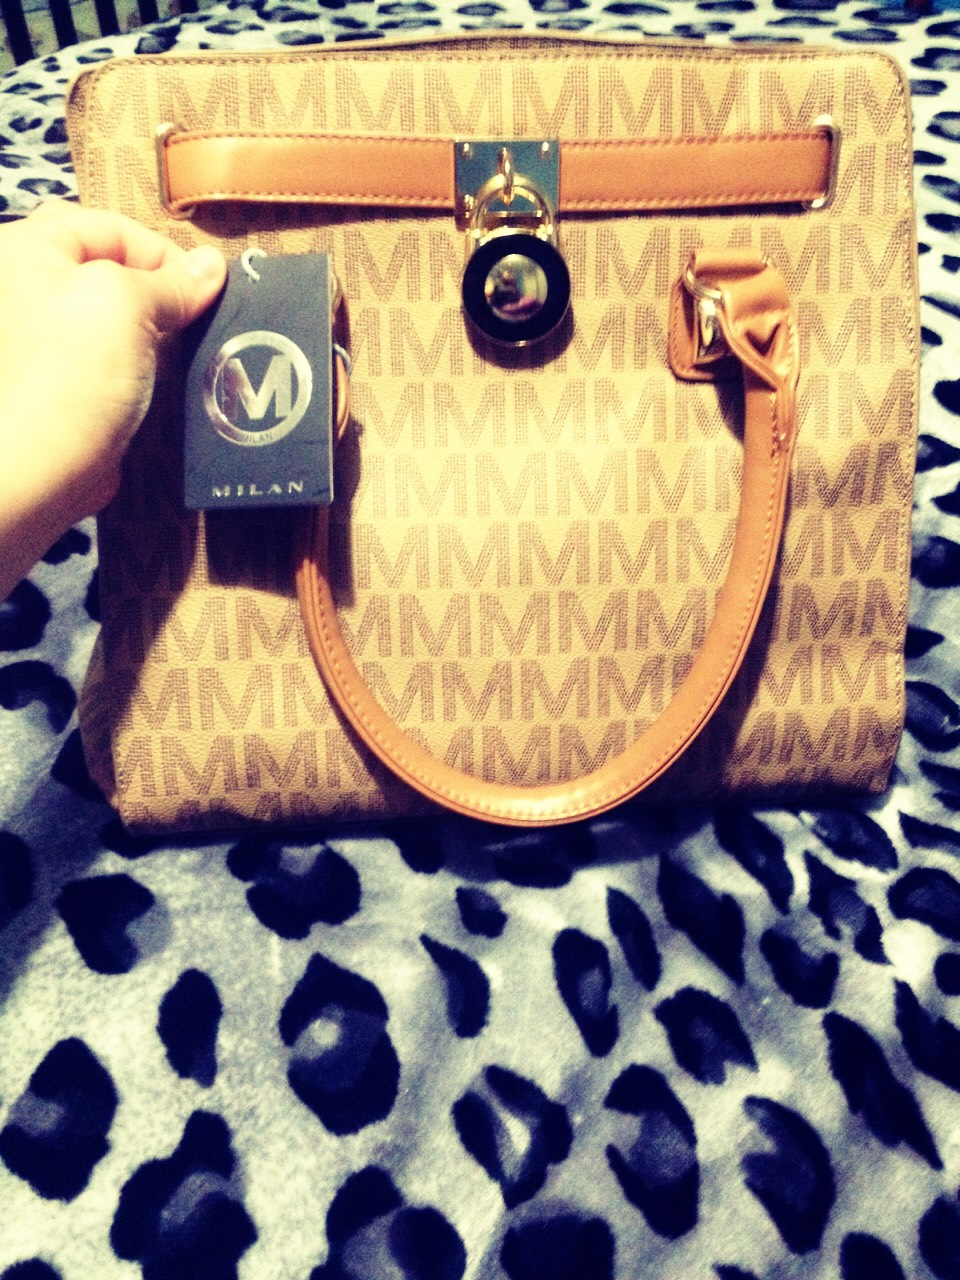 This is my MILAN purse got it for $60 Its a realy realy nice purse plus elegent. It in a vanilla color realy nice .! Comes with a long strap as well . You can find it on eBay and Amazon